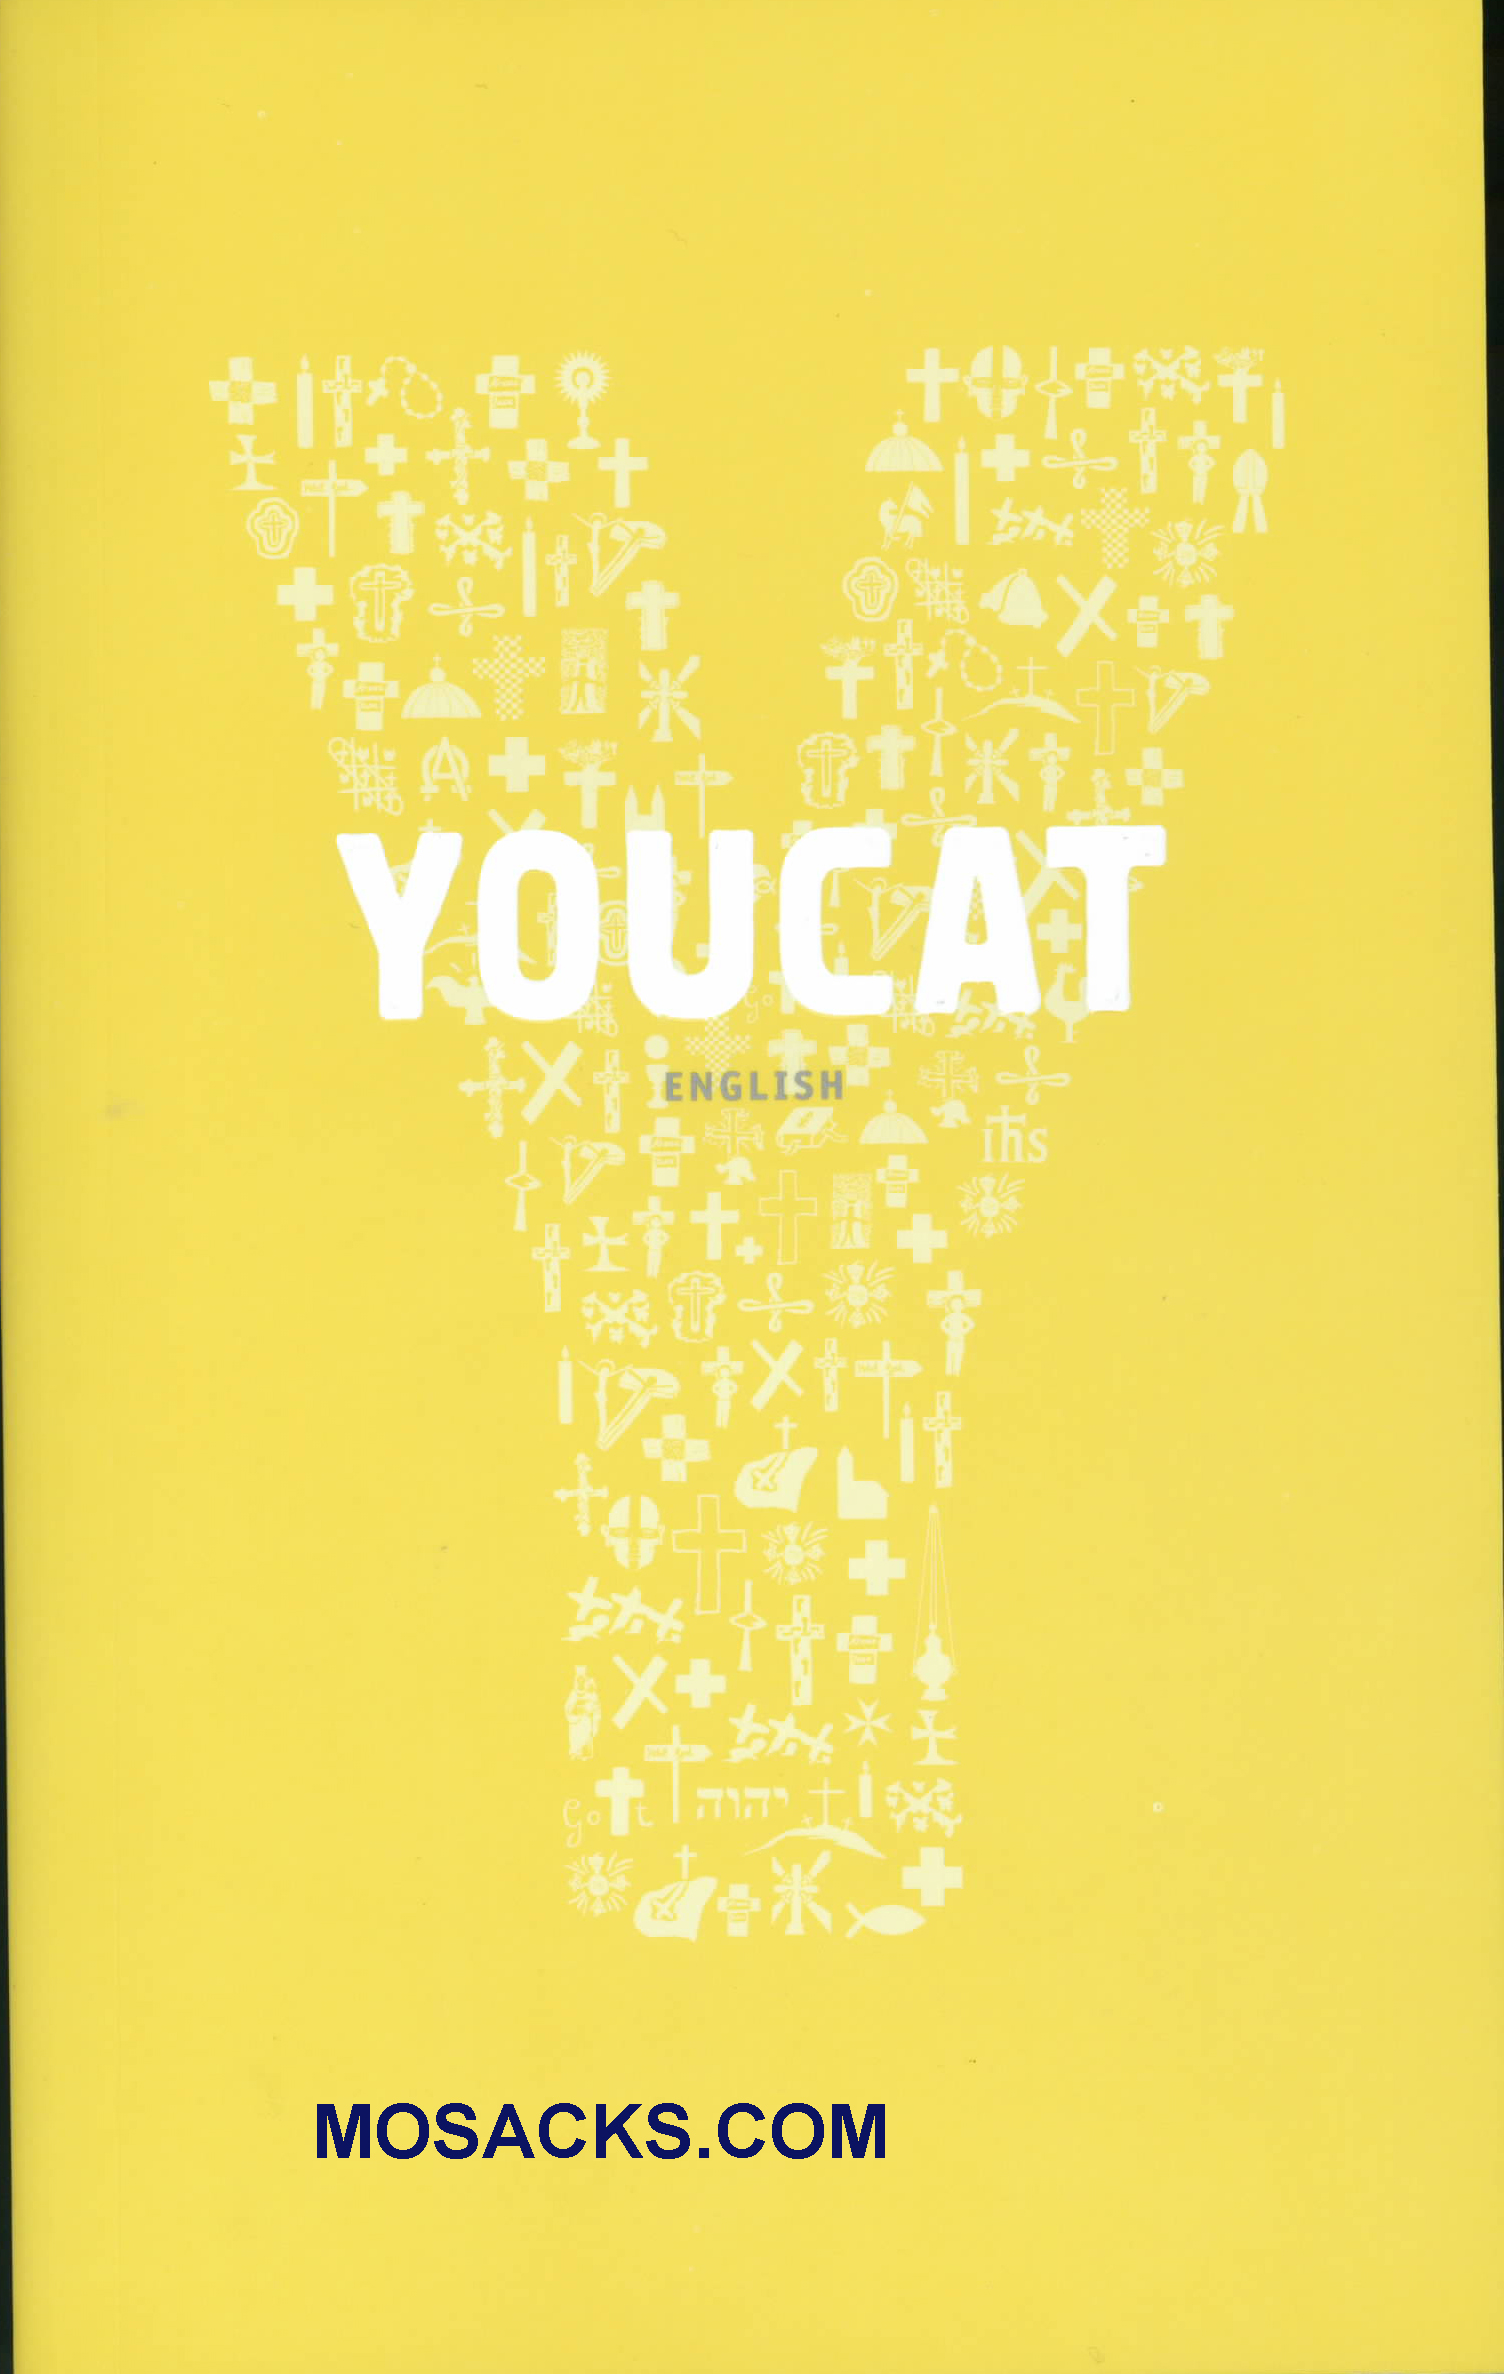 YOUCAT by Ignatius Press 108-9781586175160